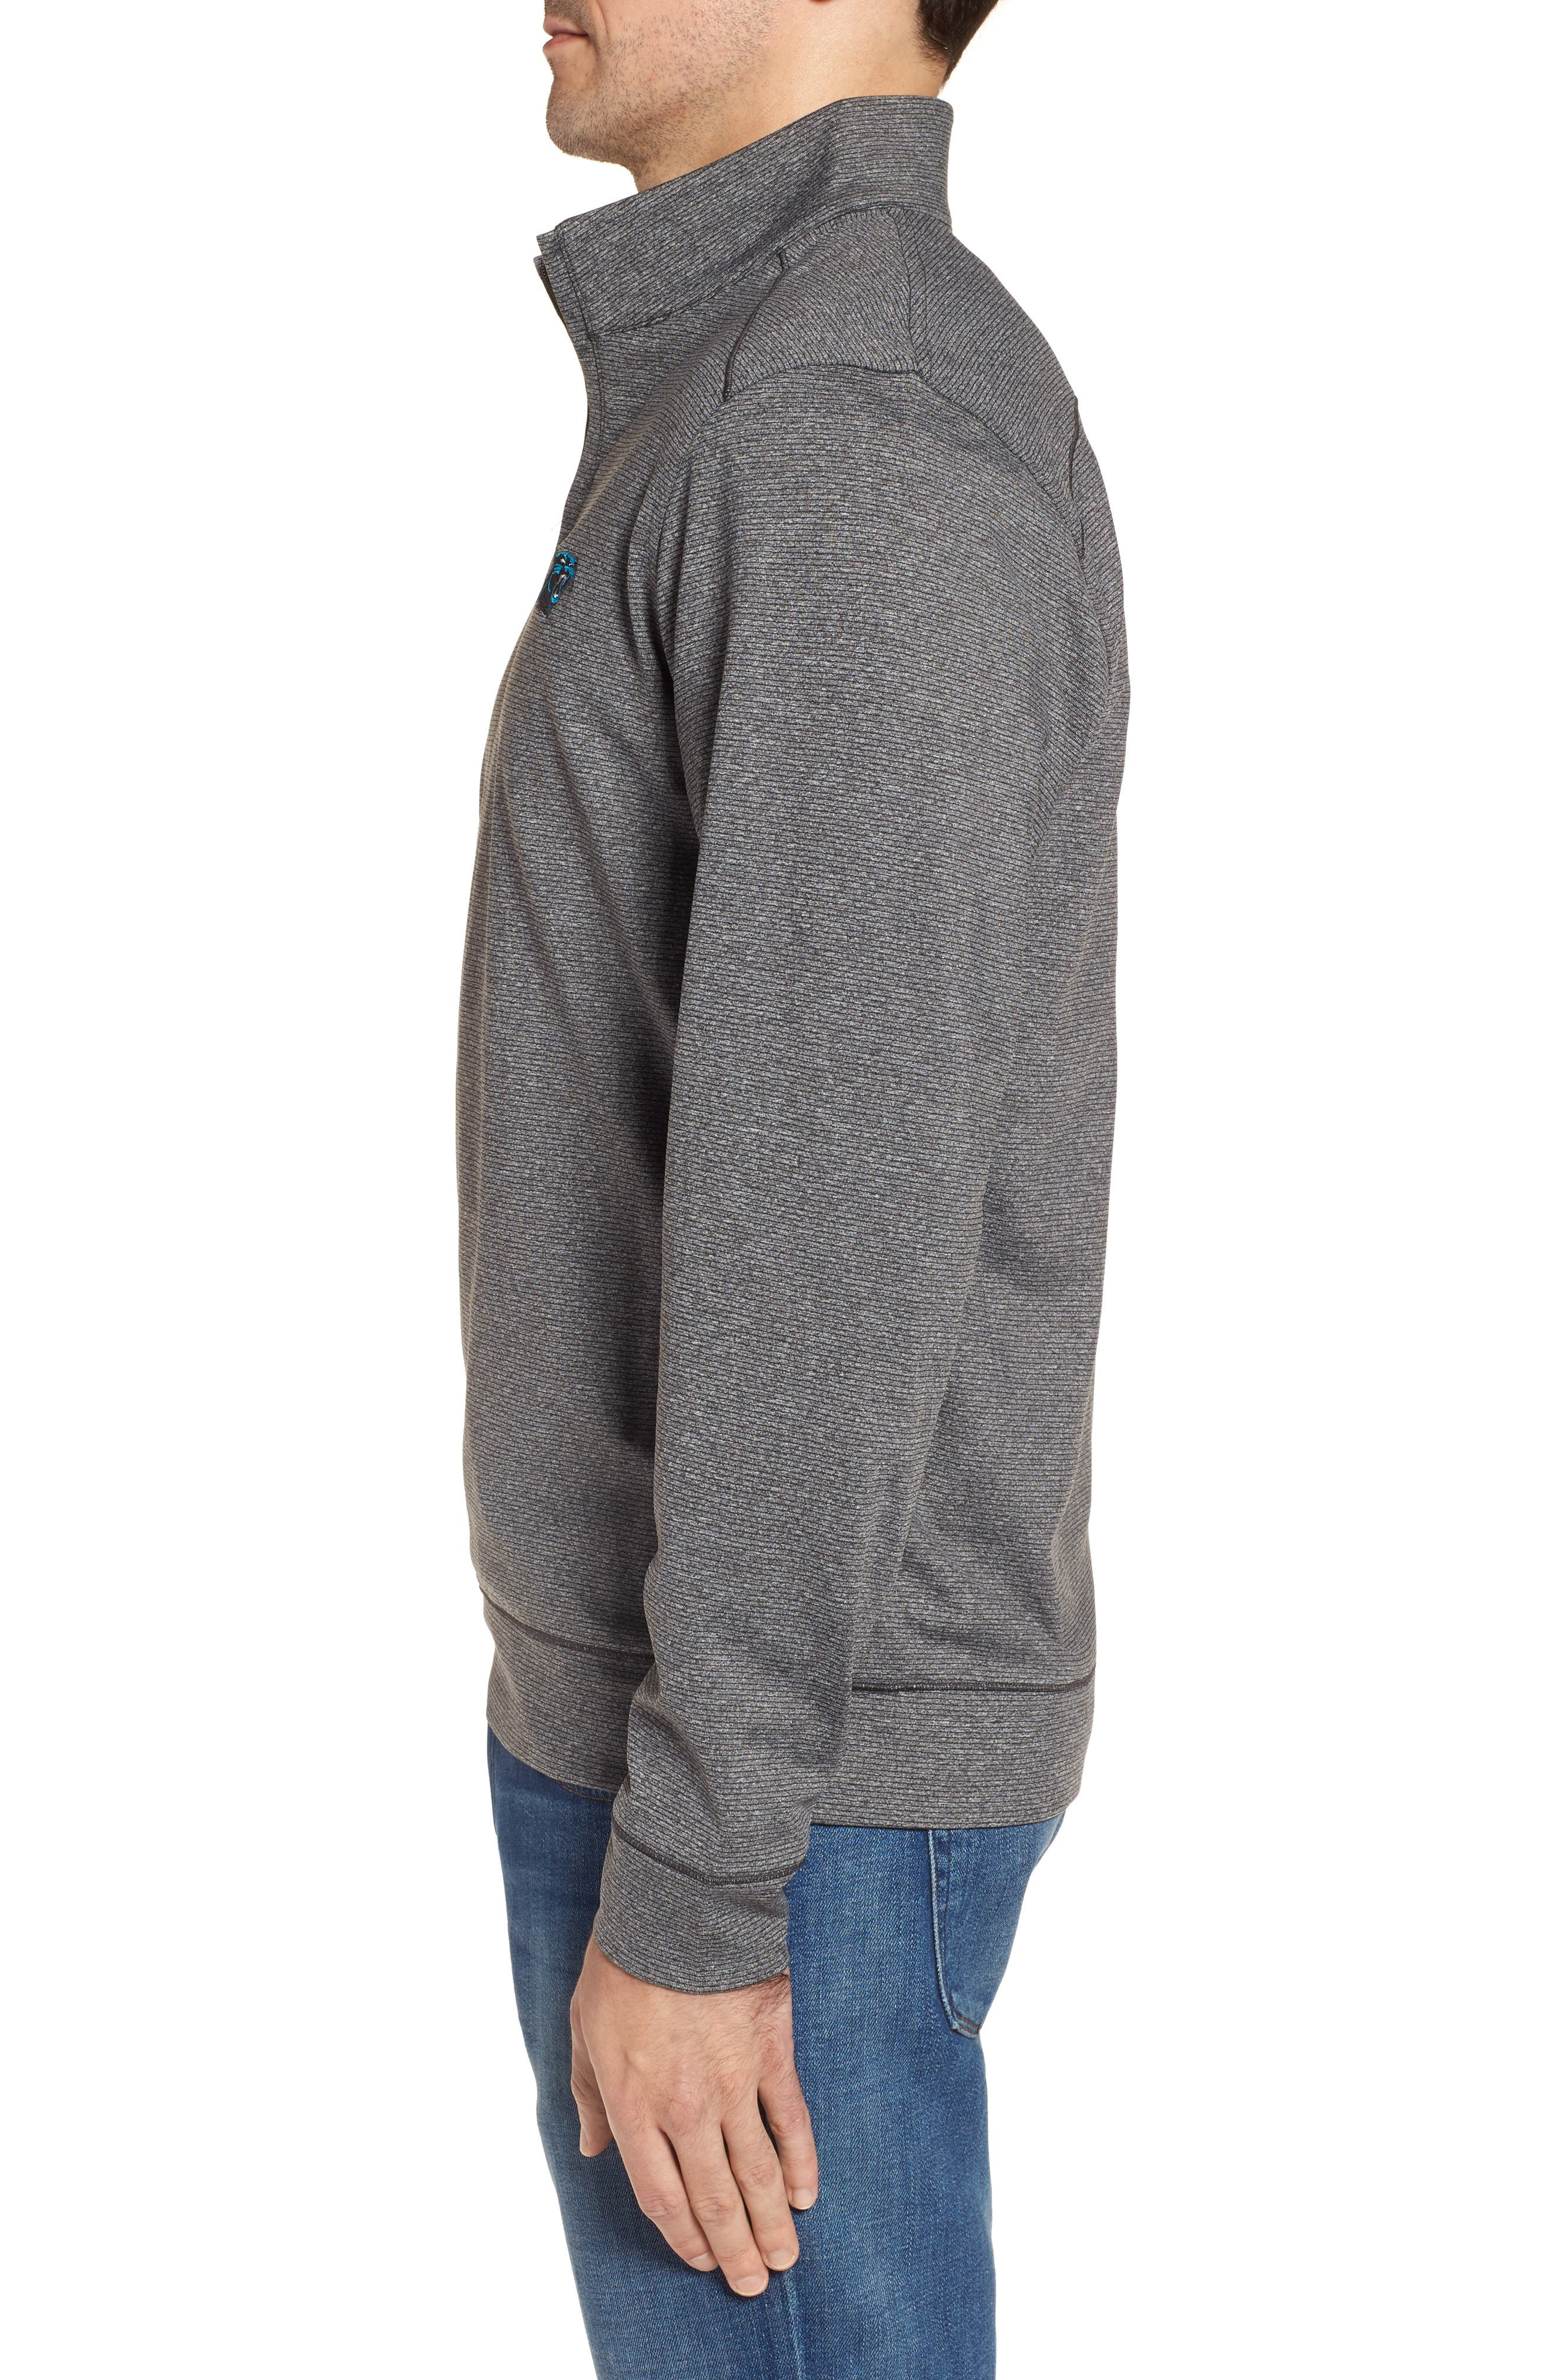 Shoreline - Carolina Panthers Half Zip Pullover,                             Alternate thumbnail 3, color,                             Charcoal Heather